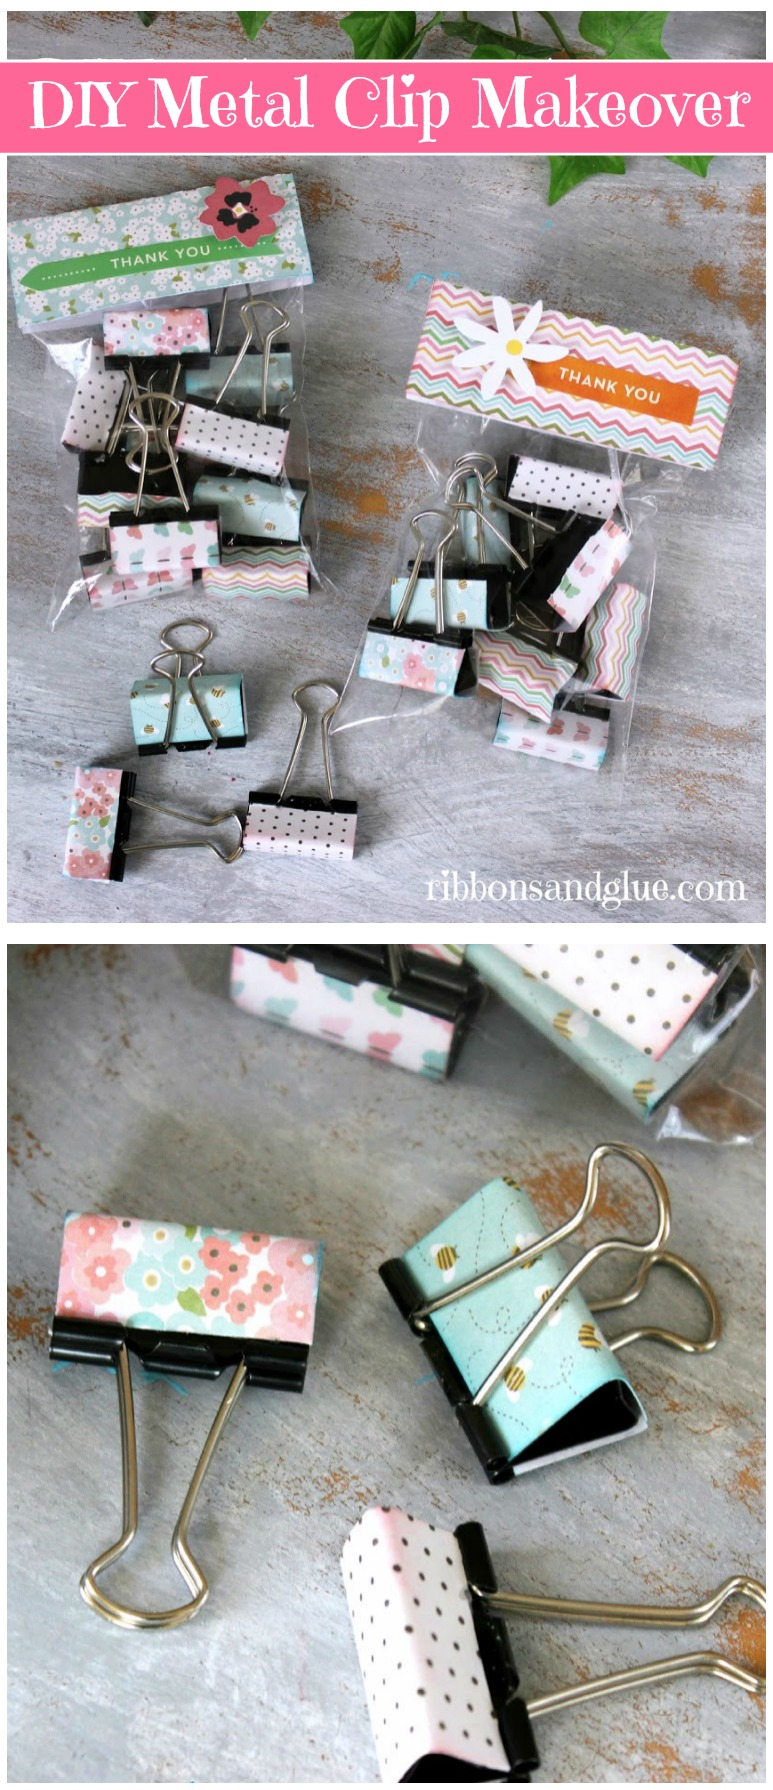 Give Metal Clips a DIY Makeover with scrapbooking paper. Such a simple, inexpensive and piratical Teacher Appreciation Gift idea!